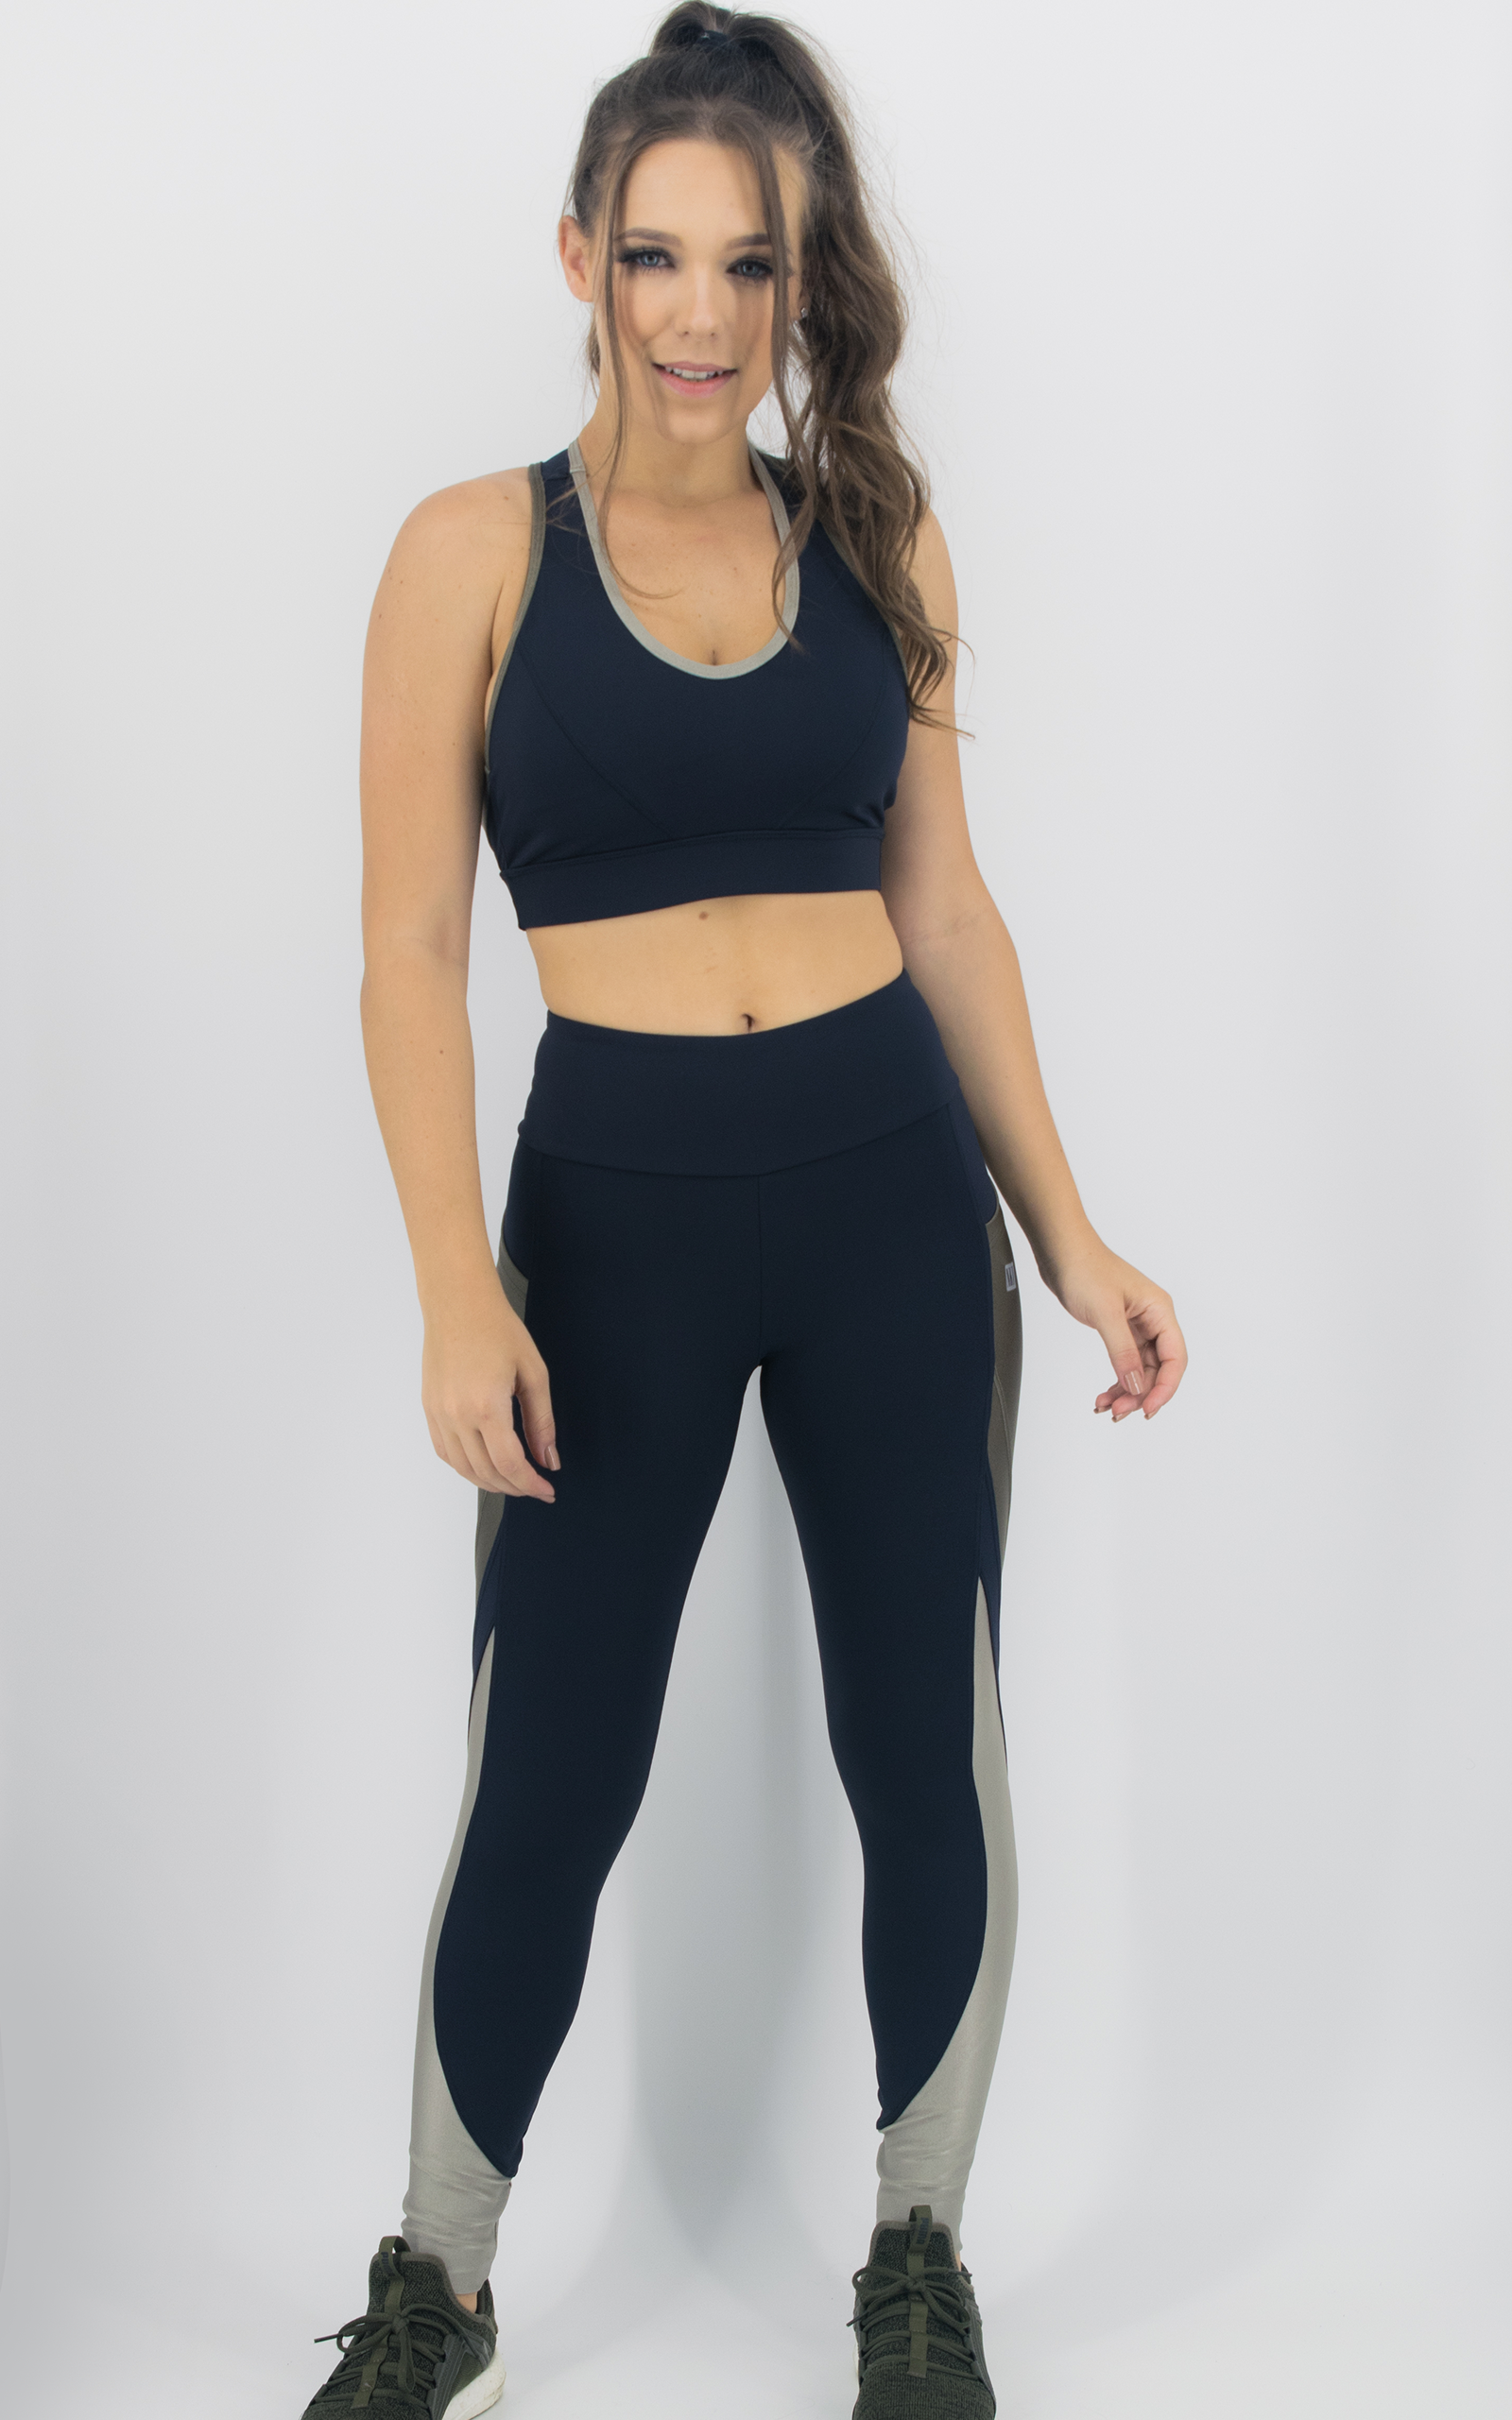 Top Expression Champanhe, Coleção Move Your Body - NKT Fitwear Moda Fitness